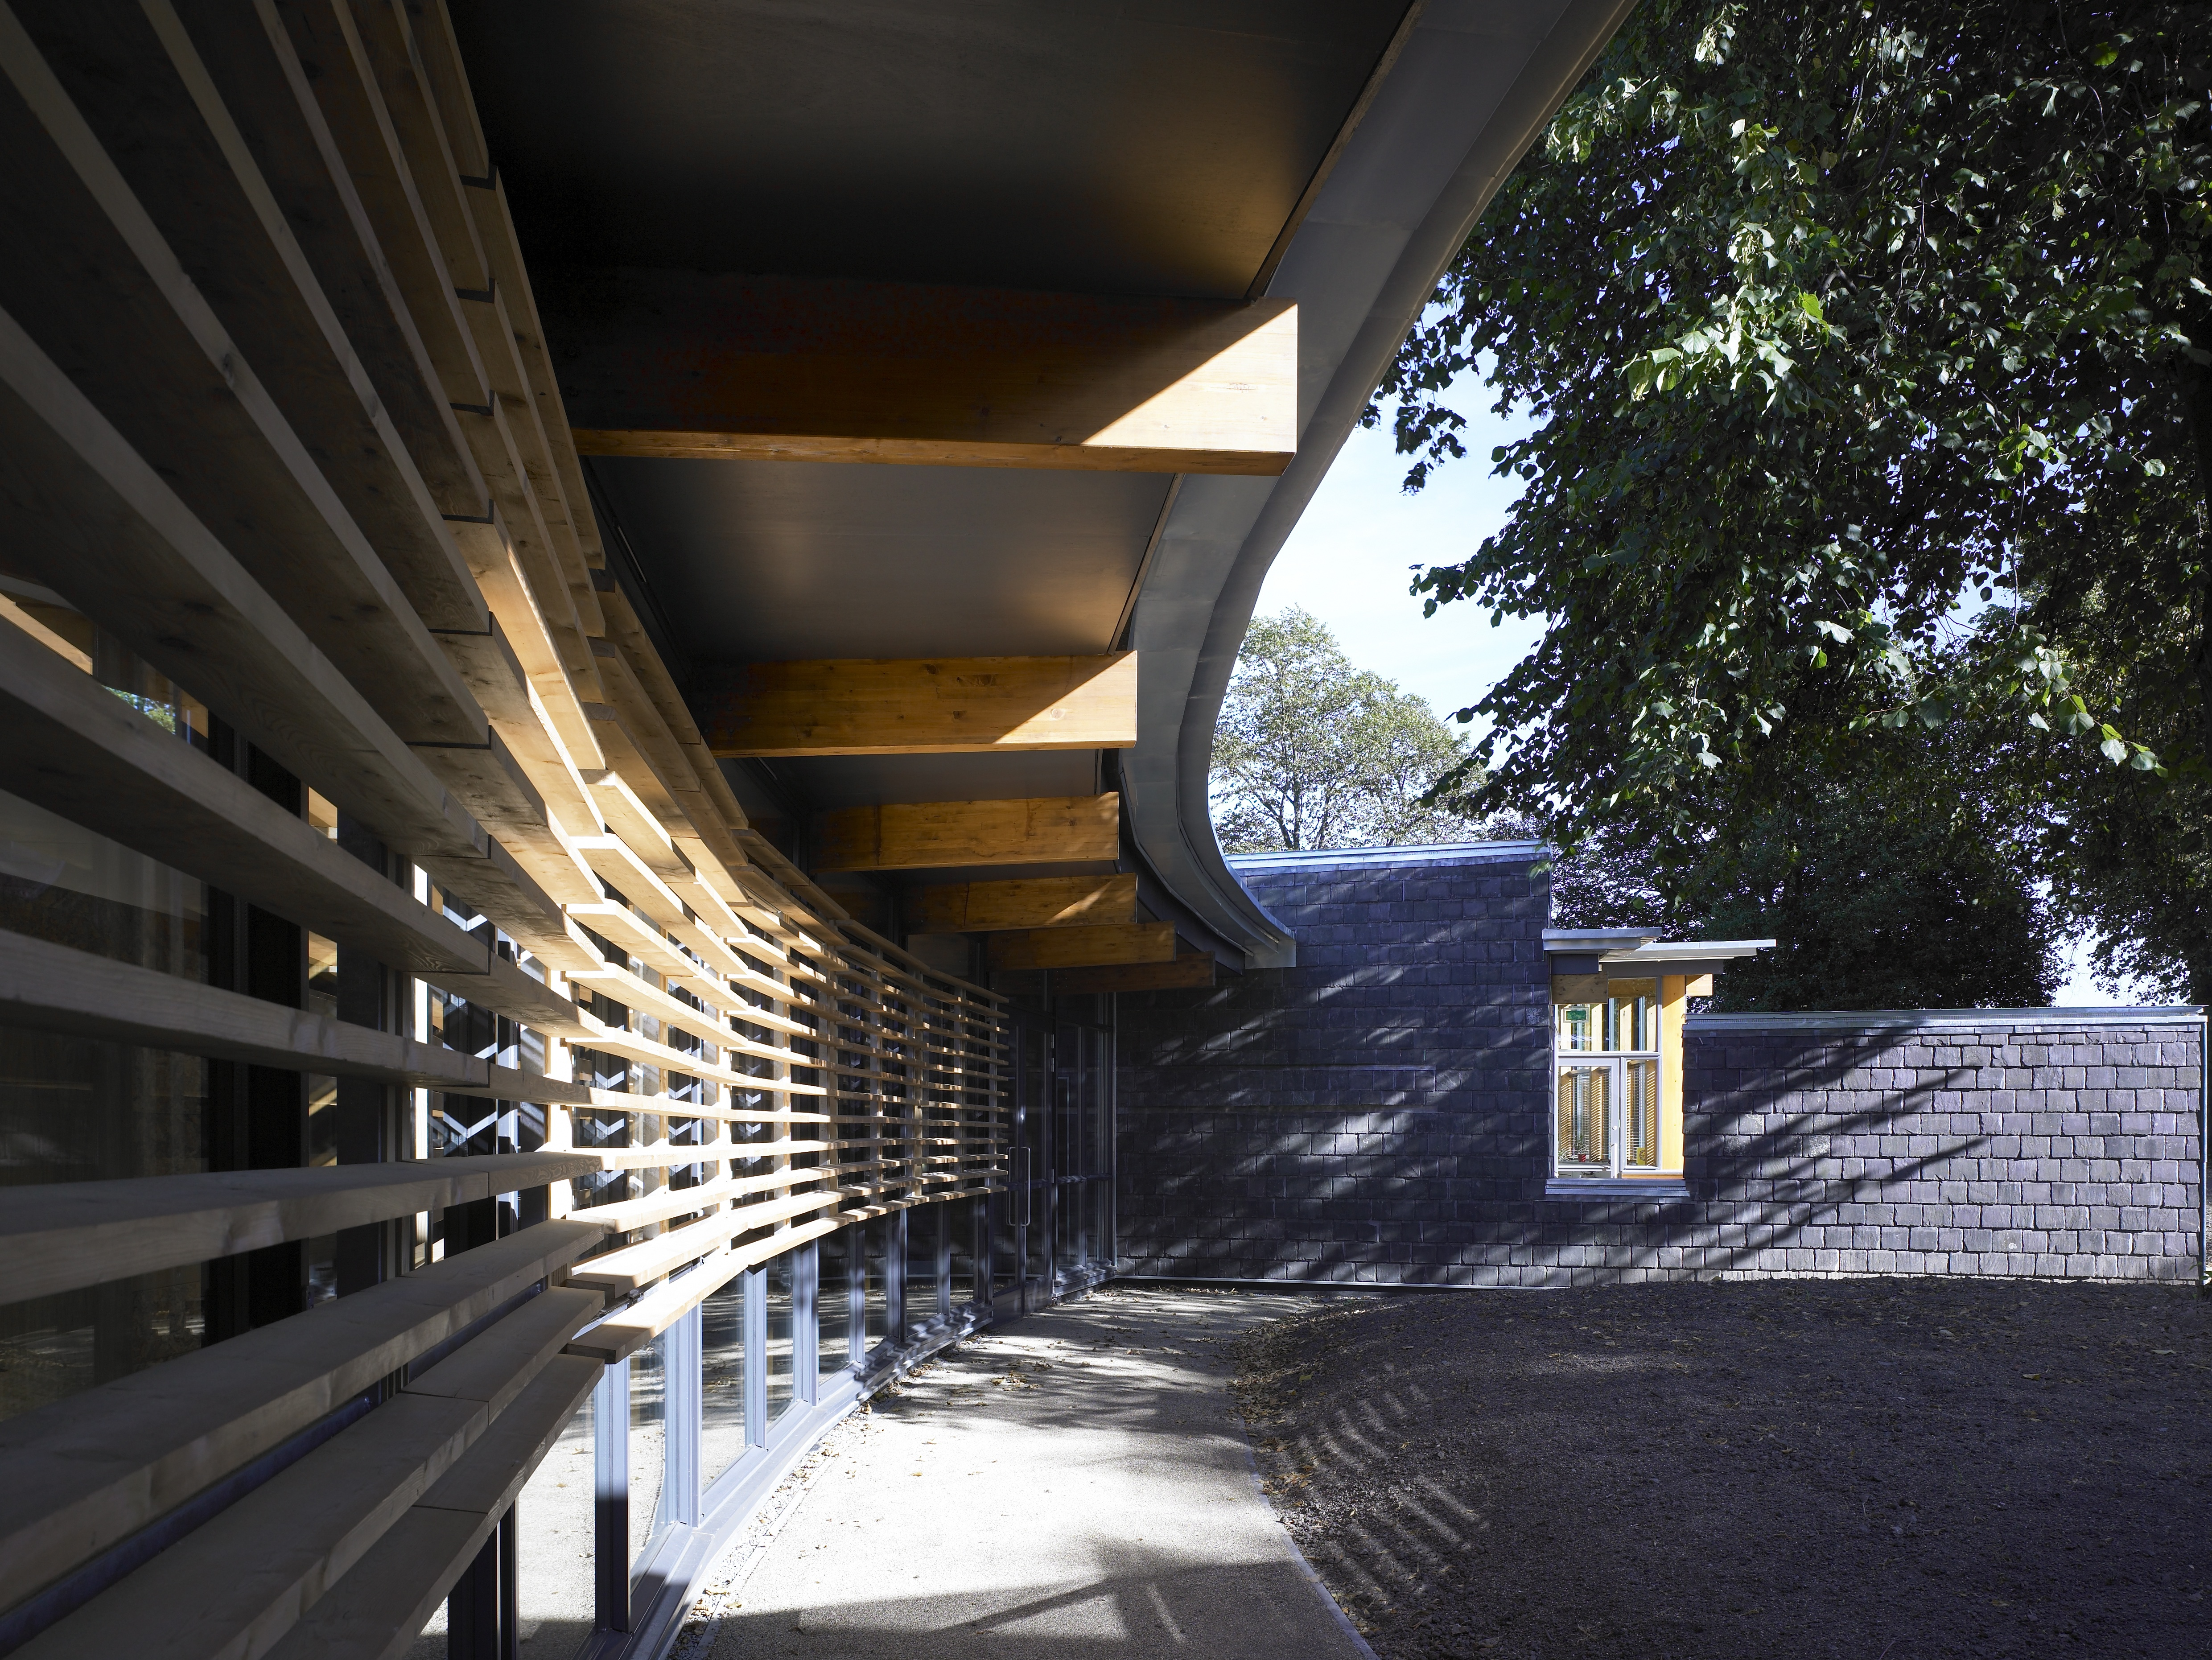 Curved walls on the exterior of the school